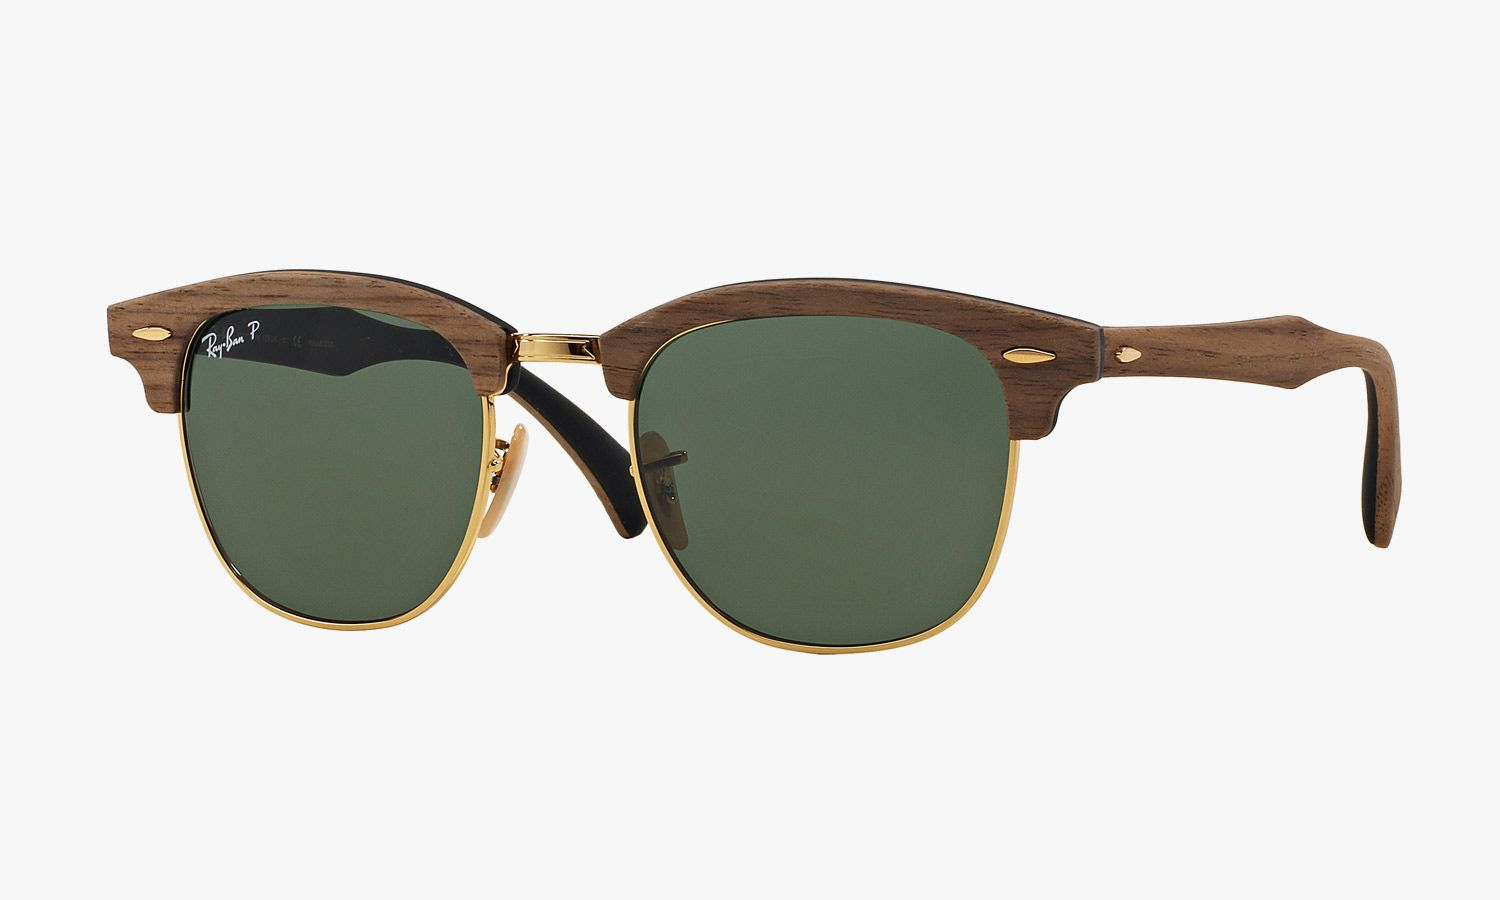 Ray Ban Woodgrain Clubmaster Sunglasses 2015 • Selectism  f43c9217145d